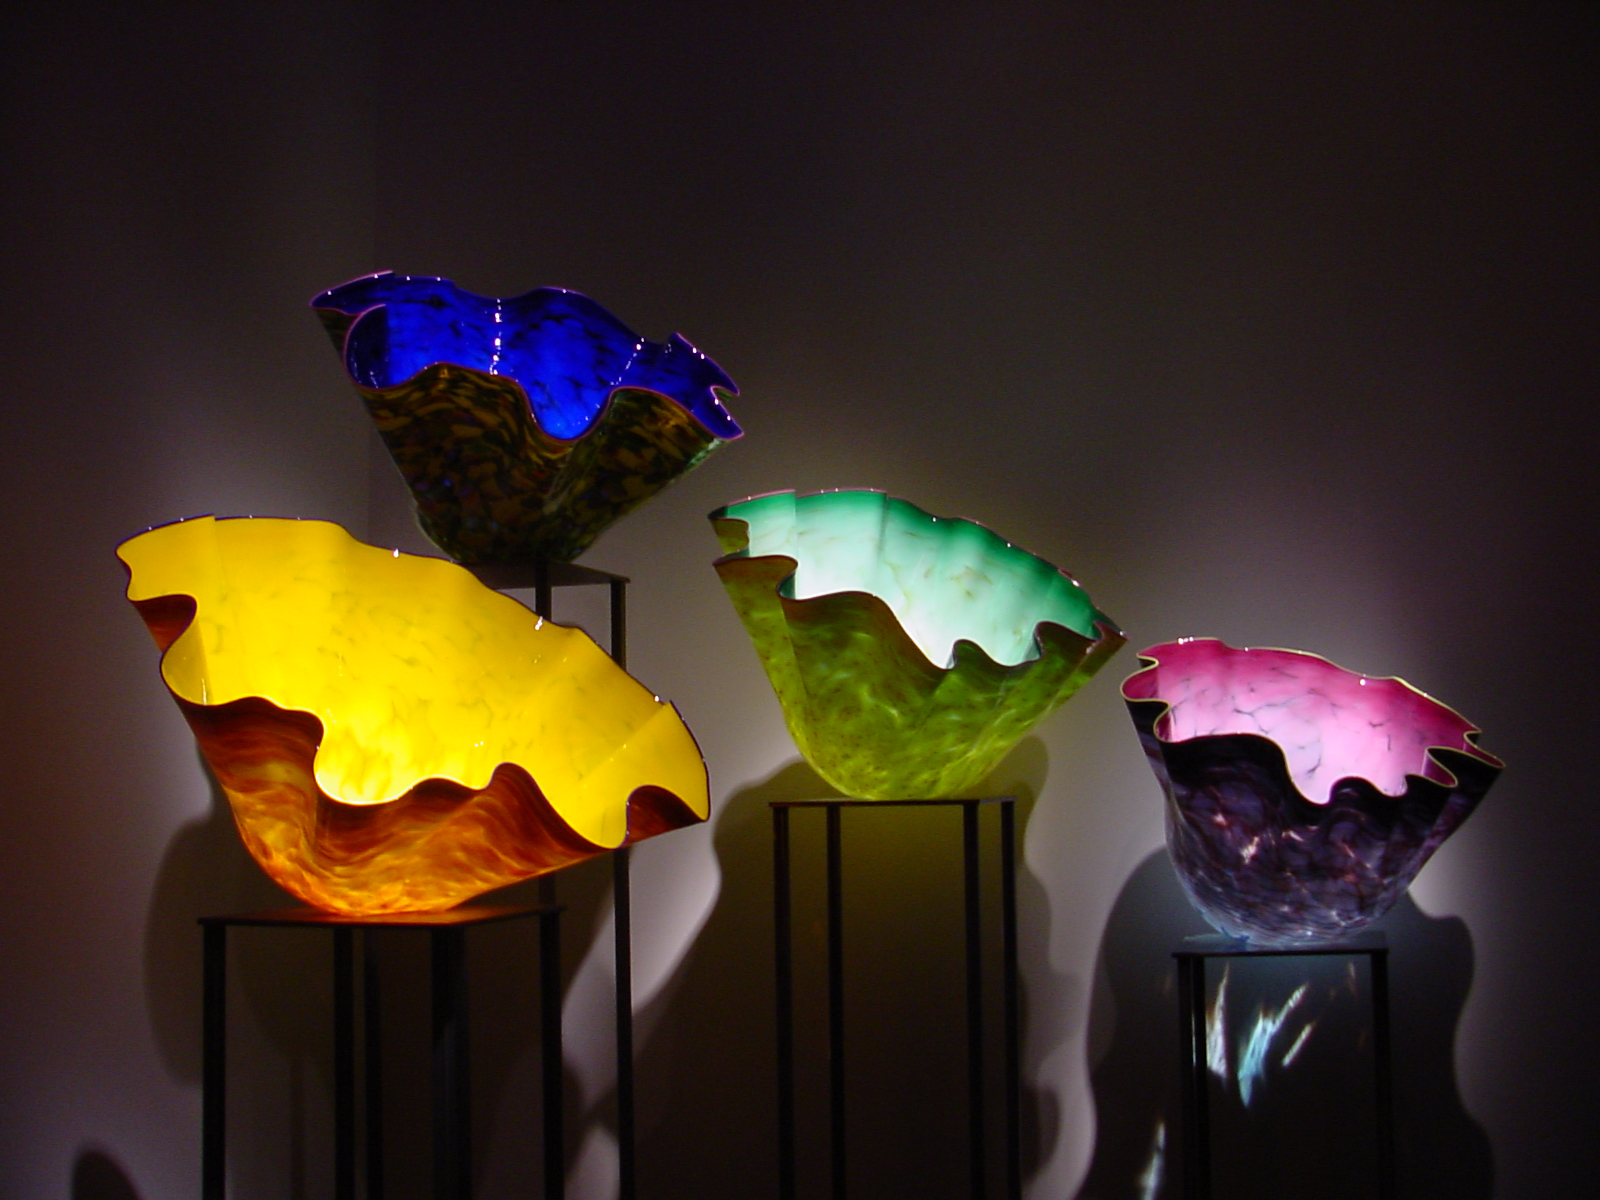 http://www.kellygrimm.com/images/chihuly01-1600x1200.jpg